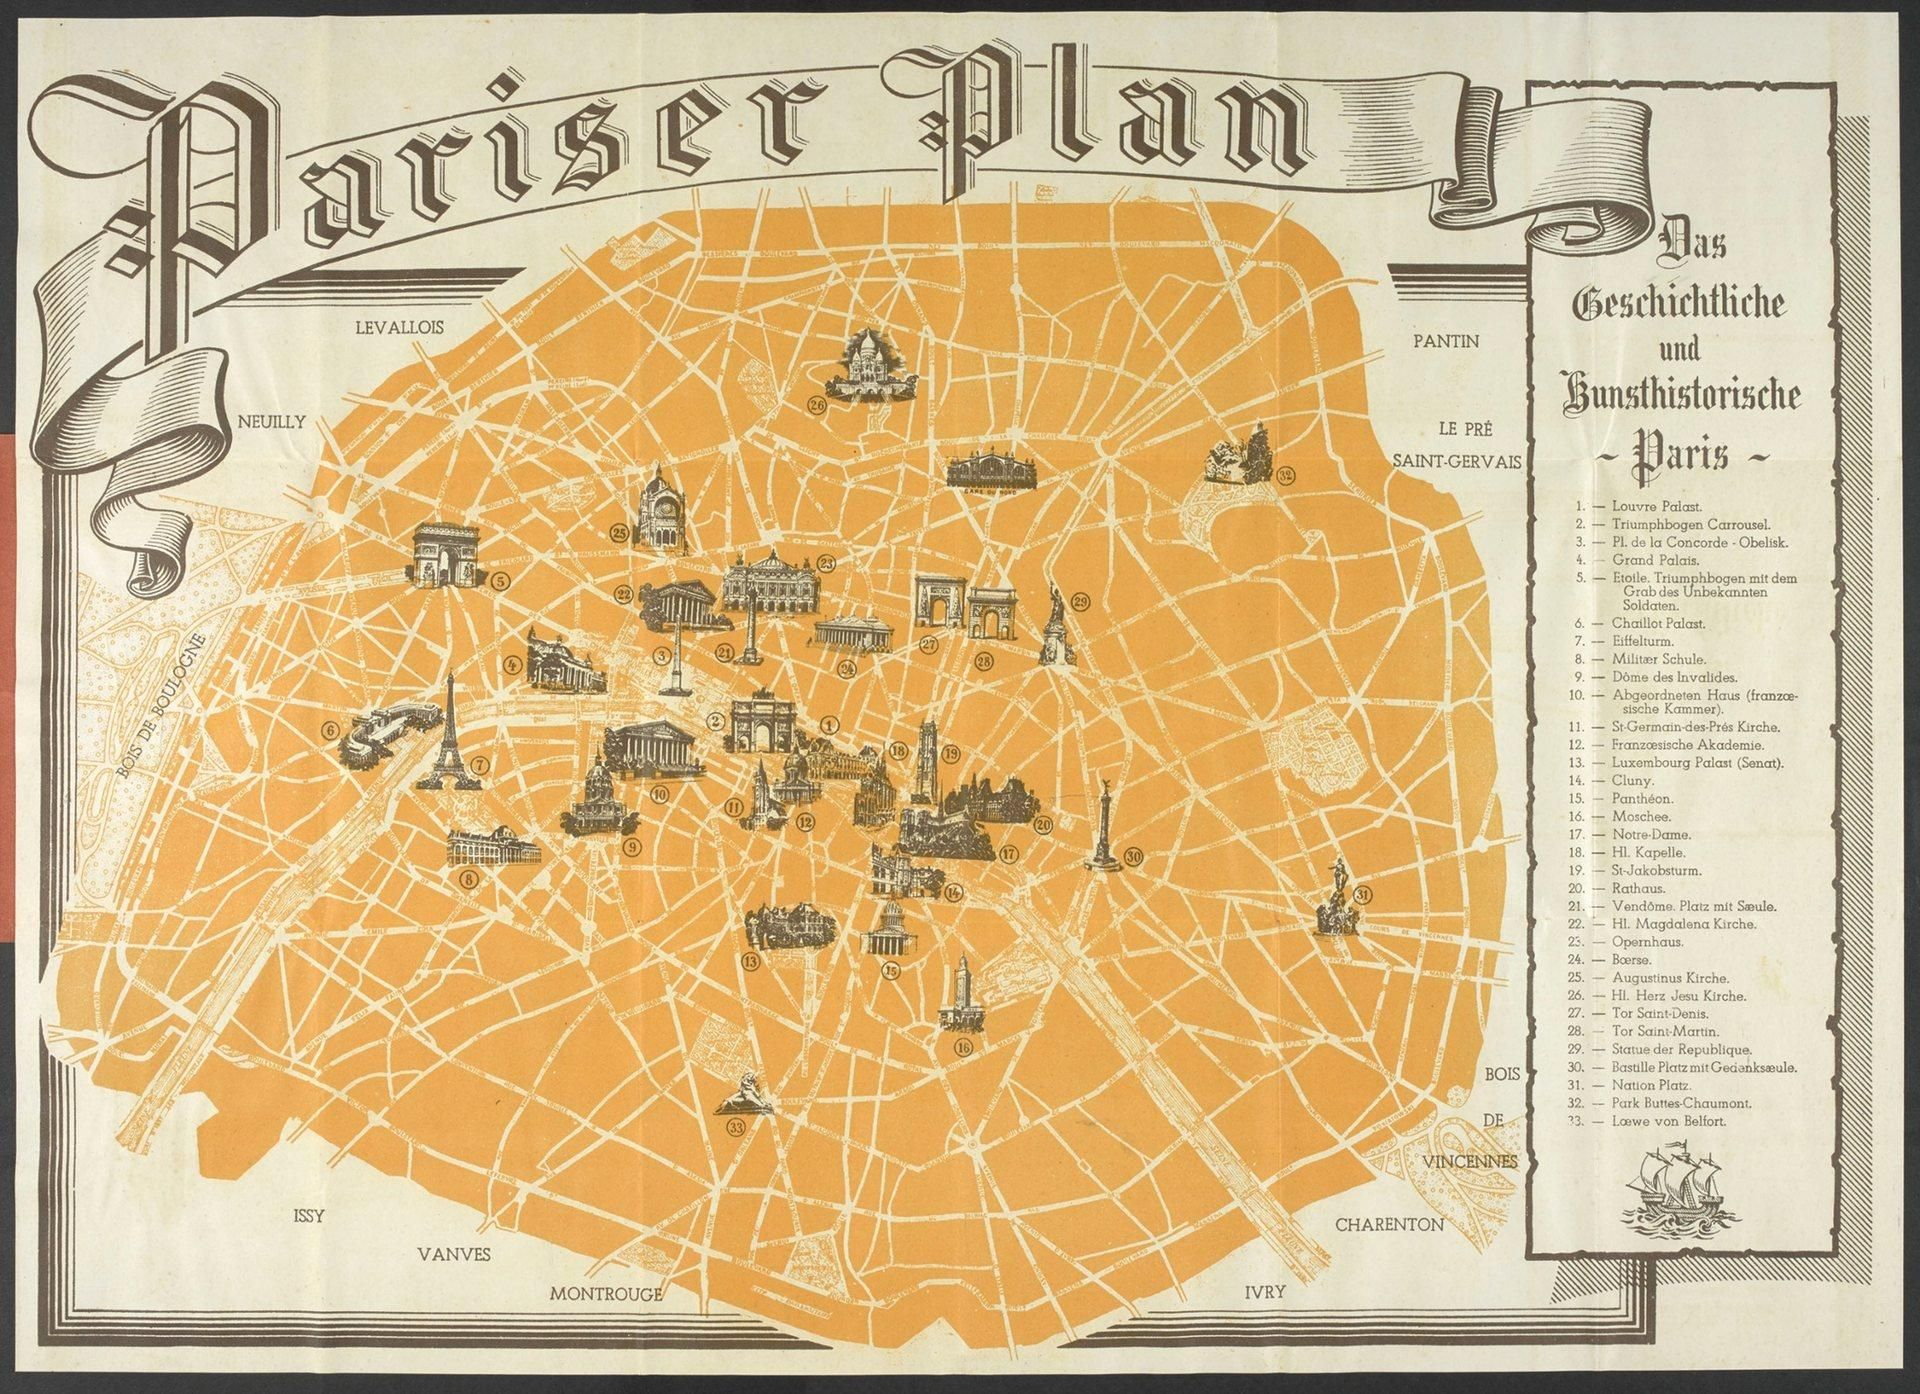 Tourist map of Paris given to German troops during WW2 occupation